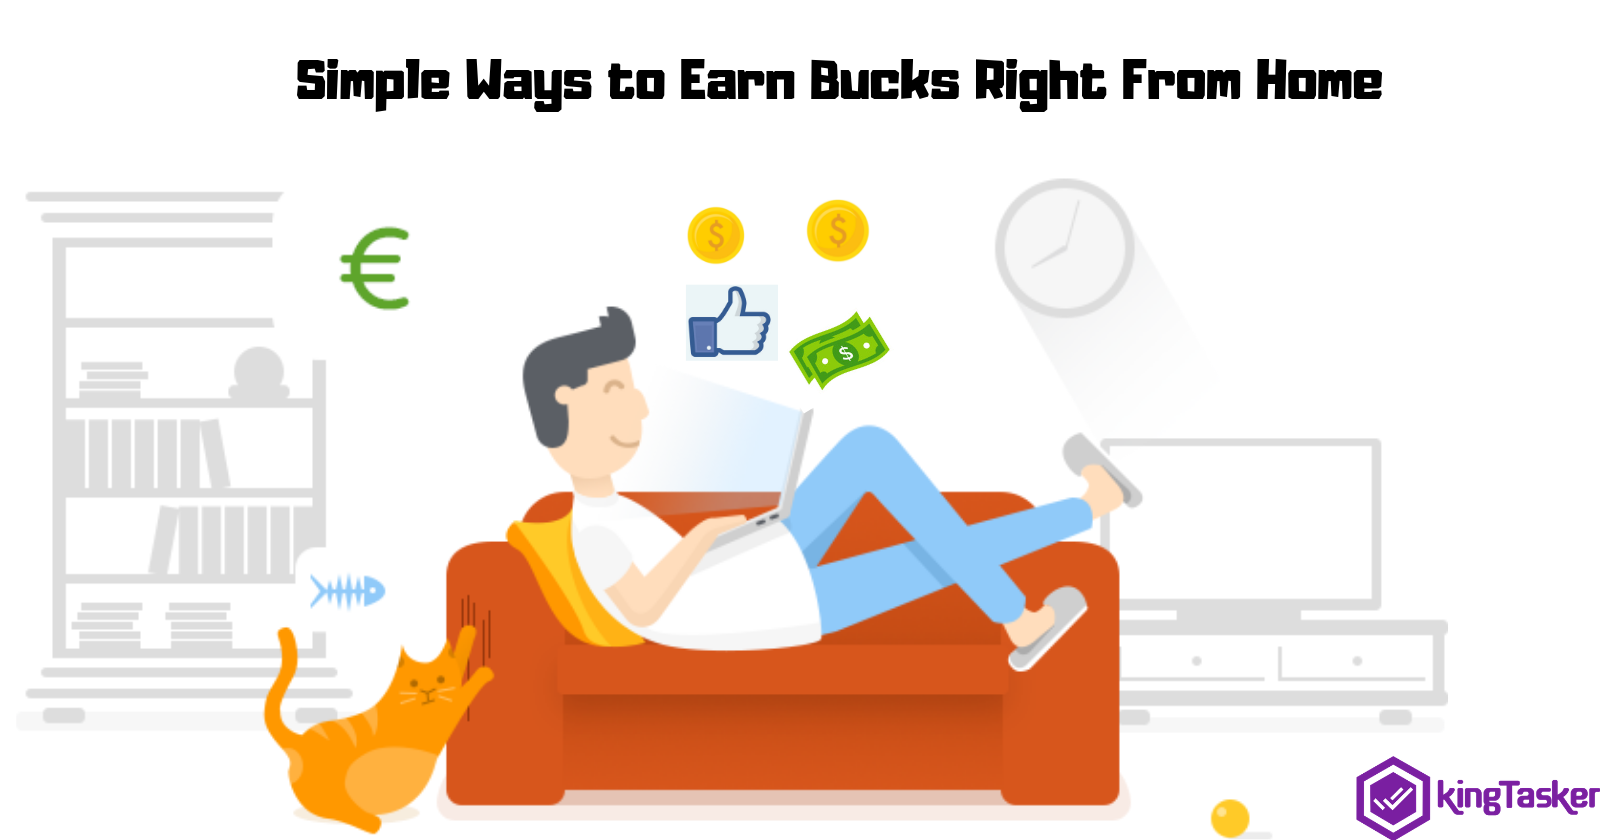 Simple Ways to Earn Bucks Right From Home